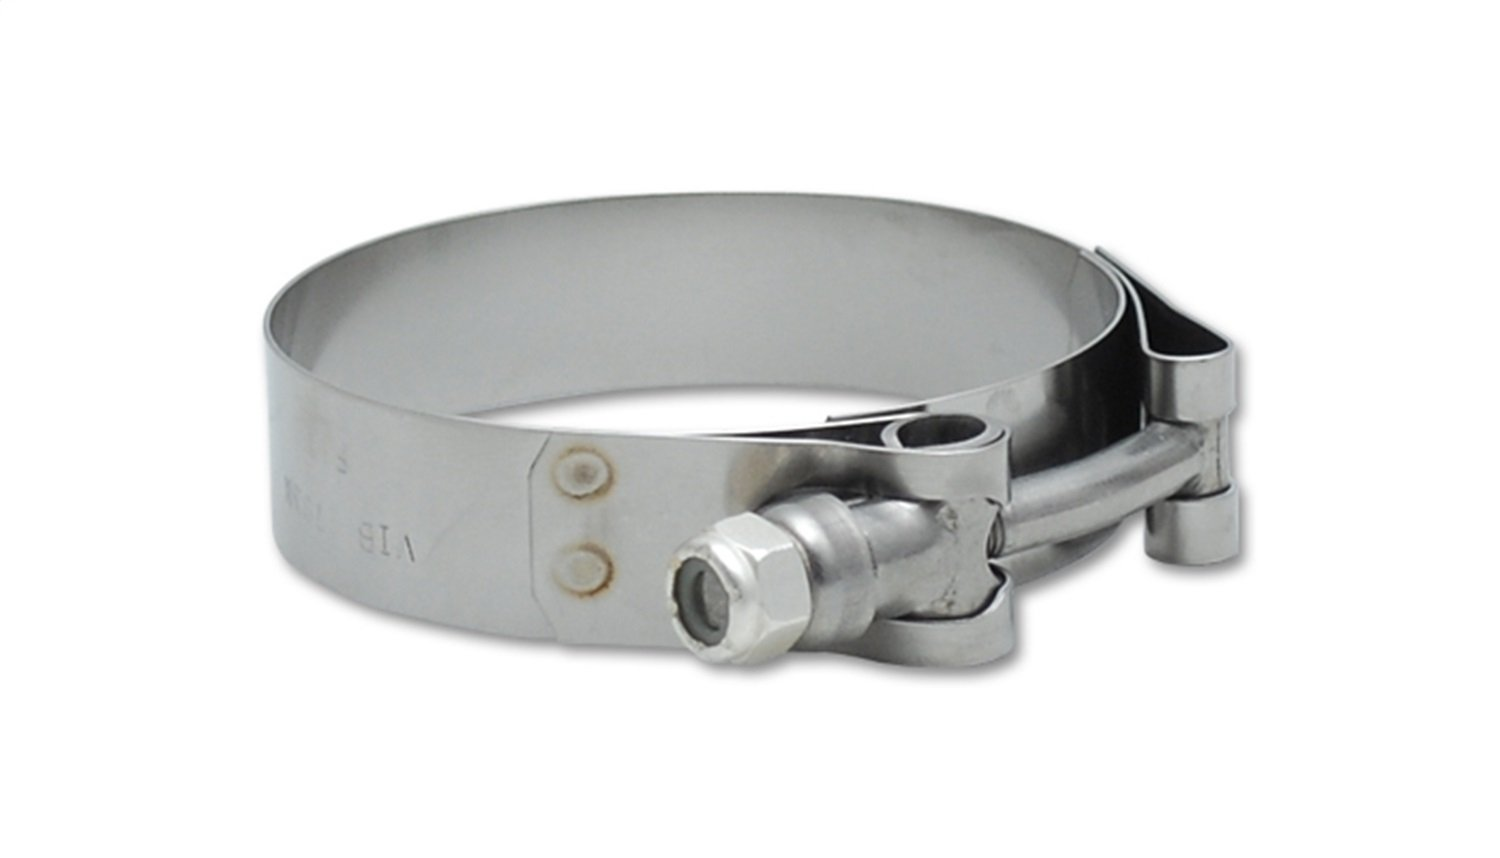 Vibrant 2796 Stainless Steel T-Bolt Clamp